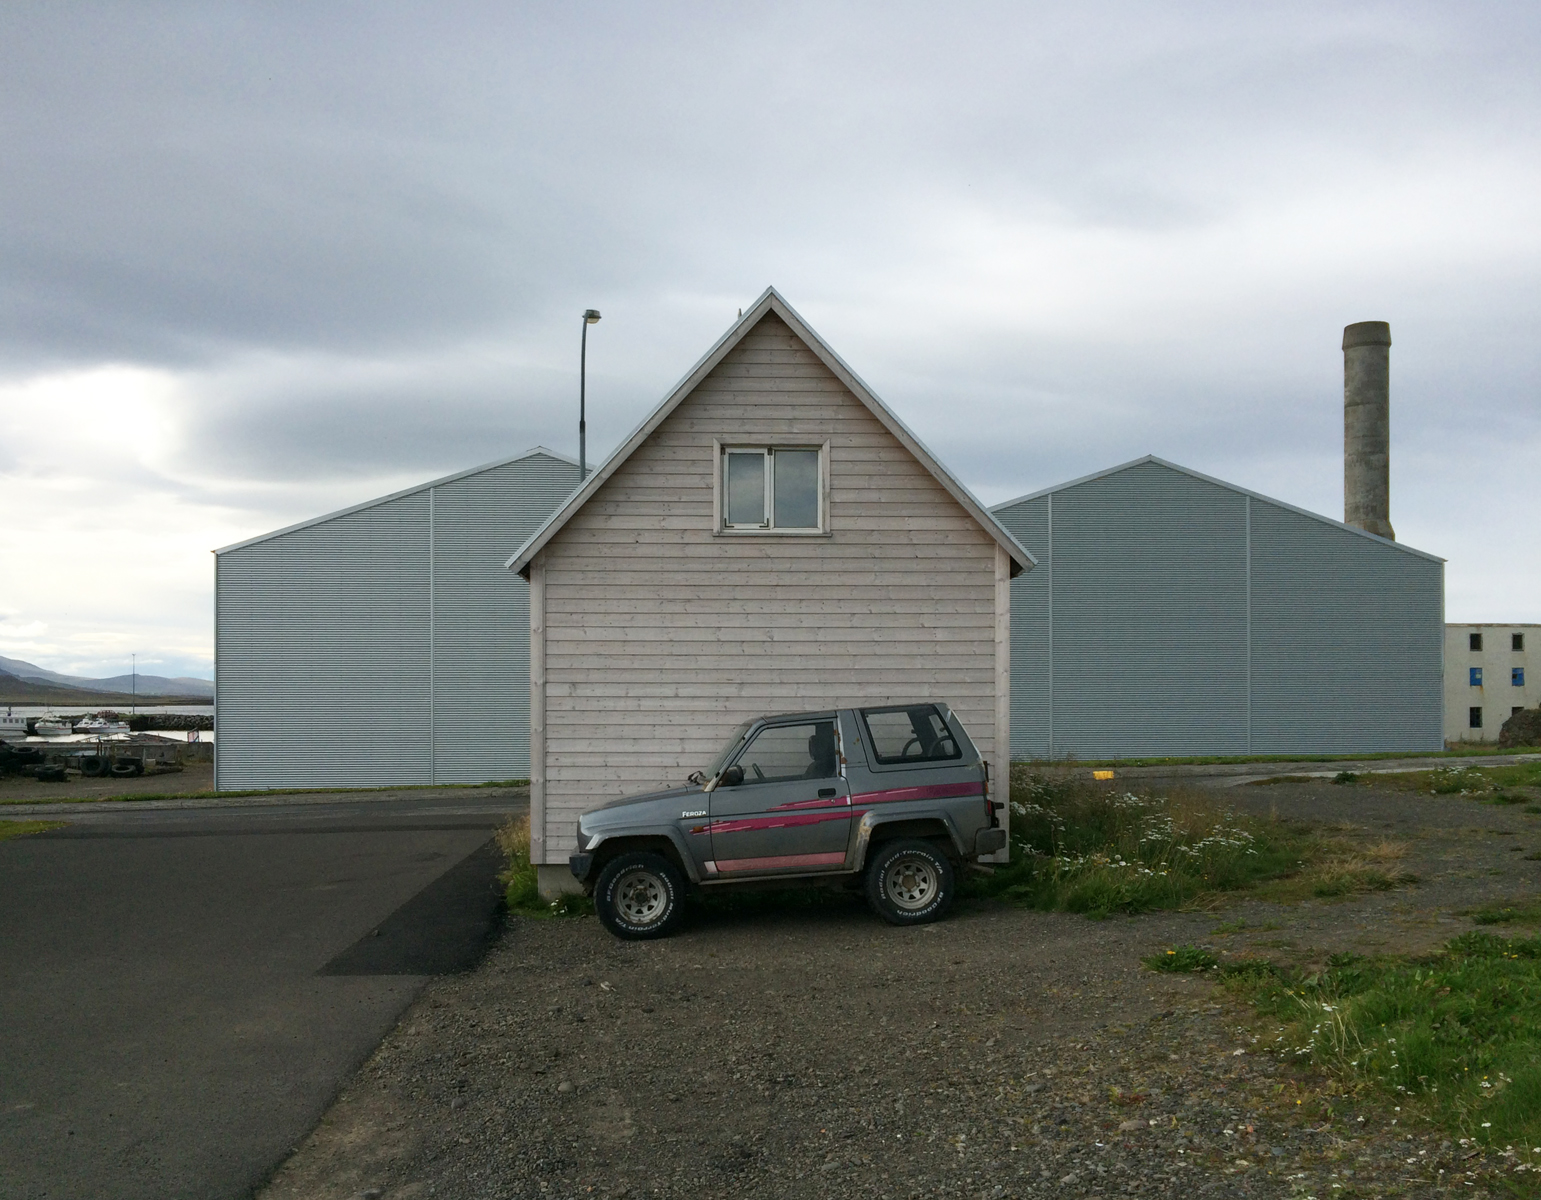 A small grey SUV parked in front of the peaked gable end of a small building.